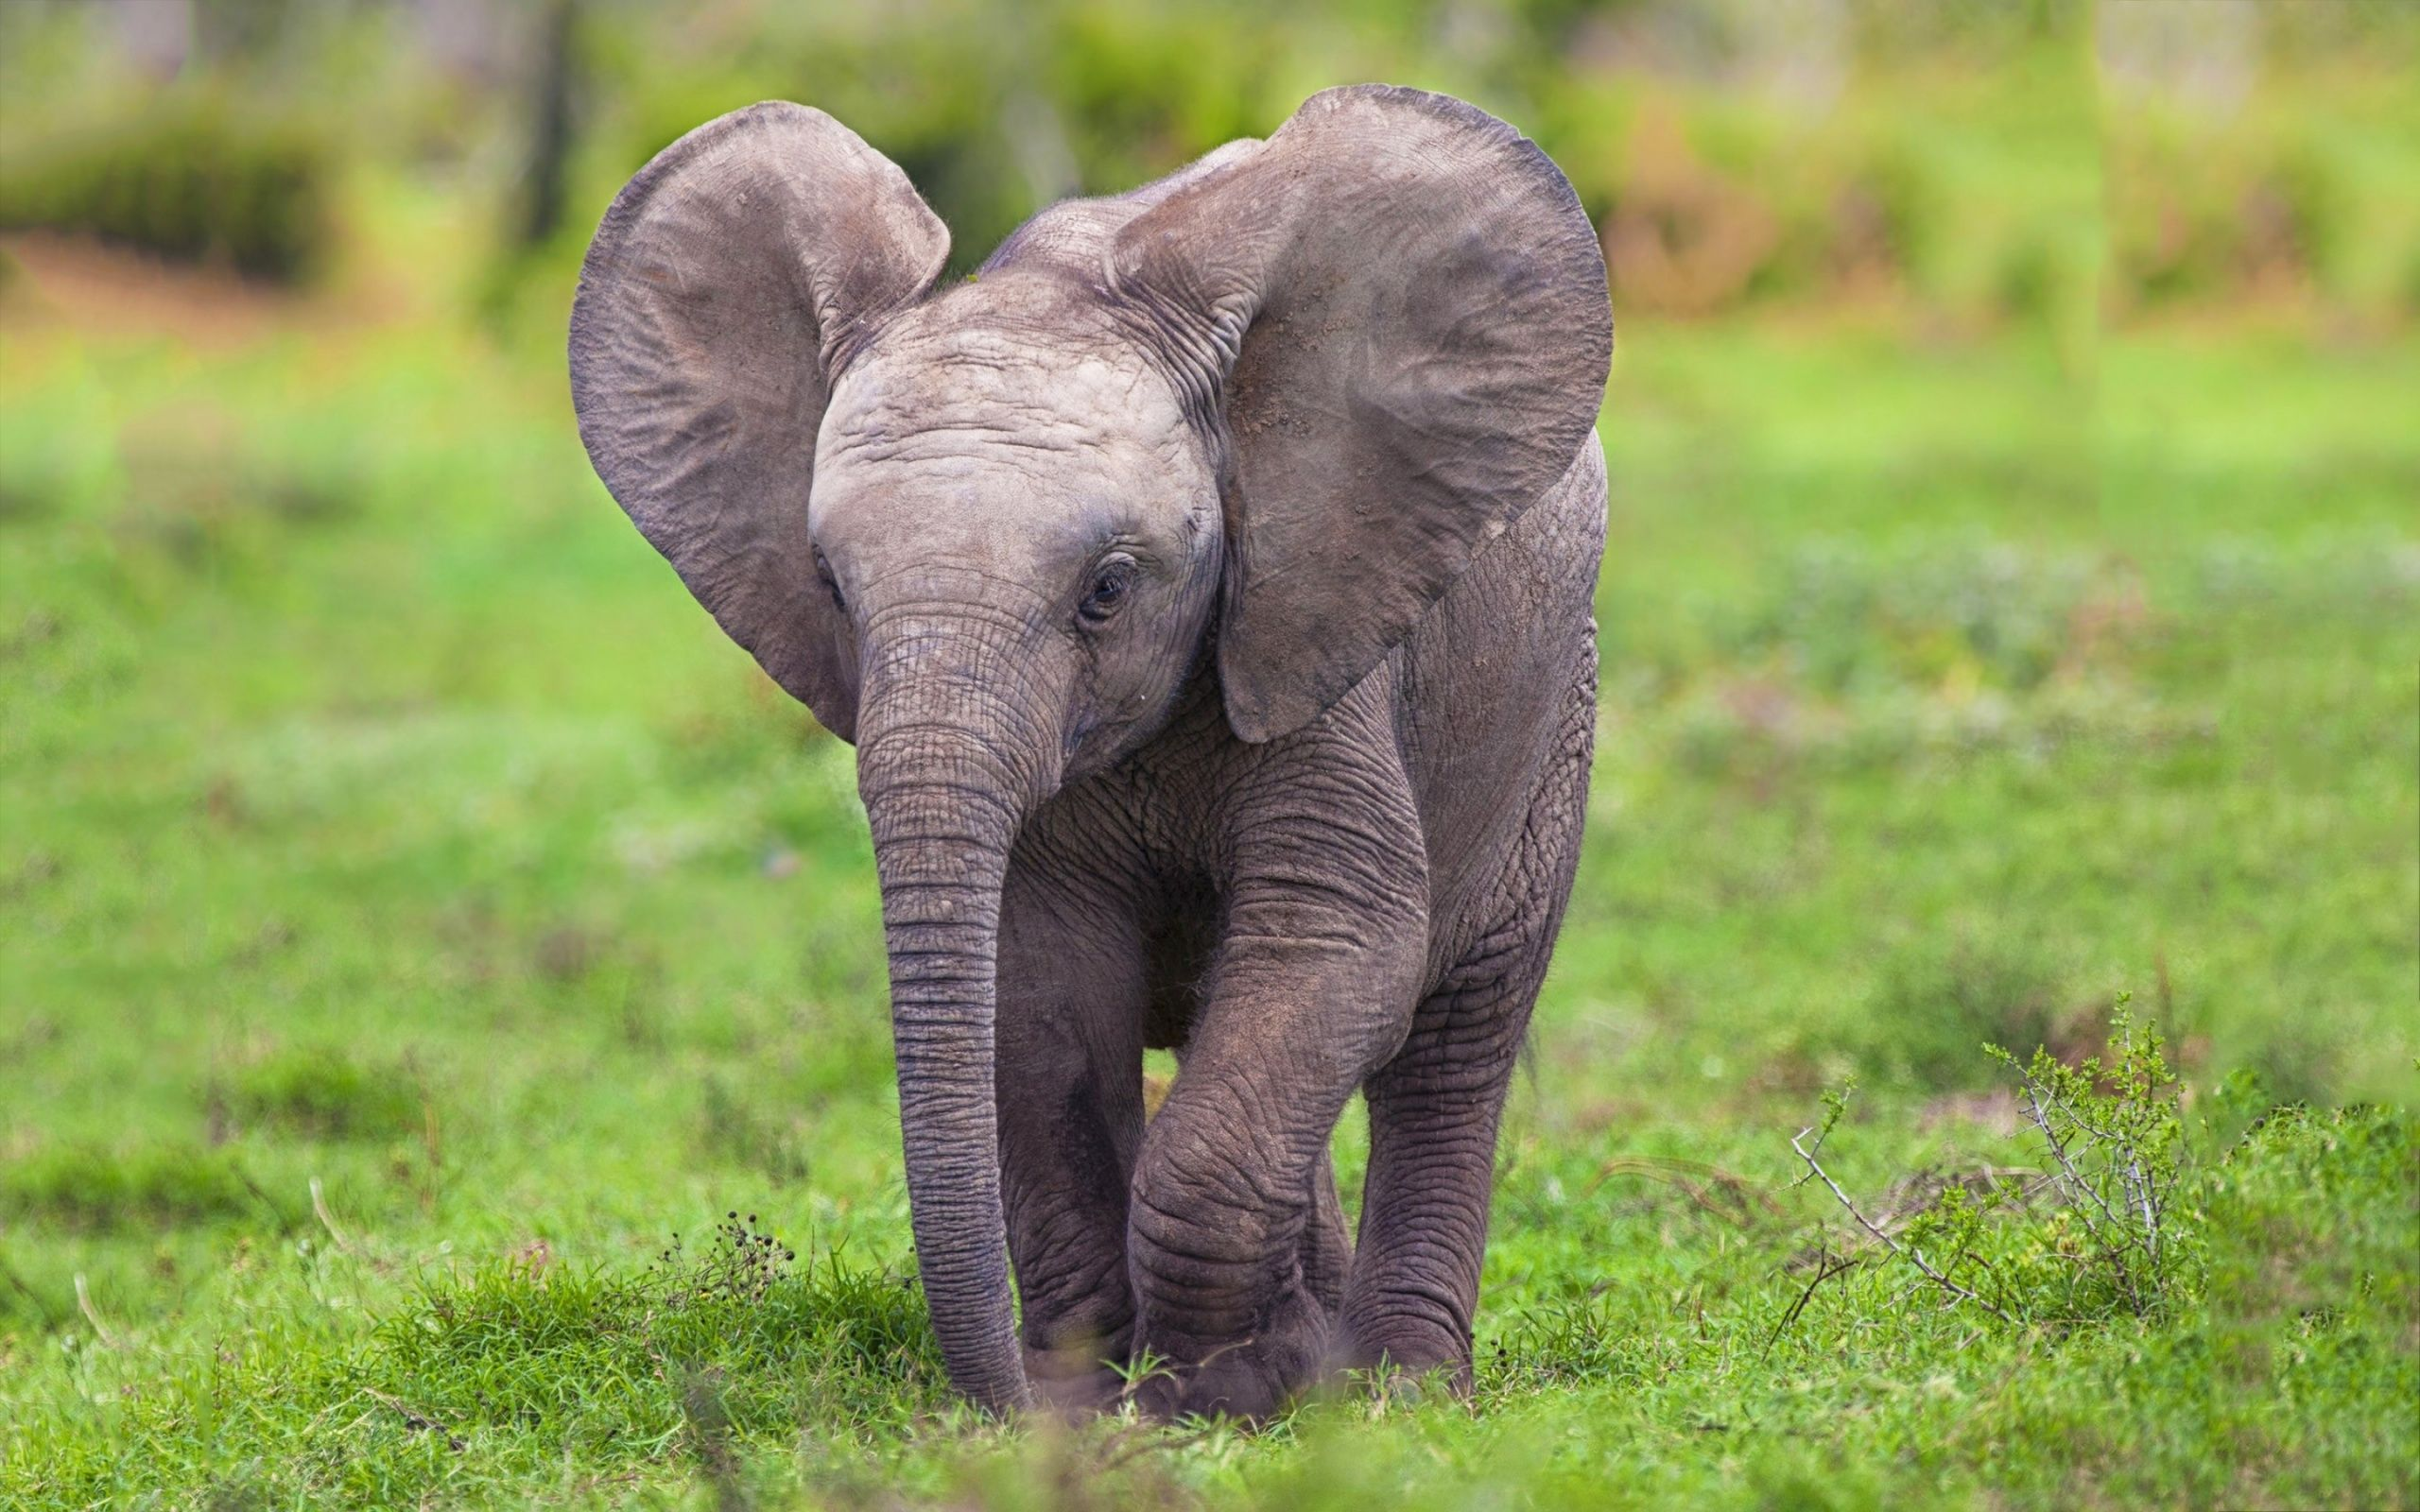 Baby elephants 15 hd screensavers hd image wallpaper - Free funny animal screensavers ...